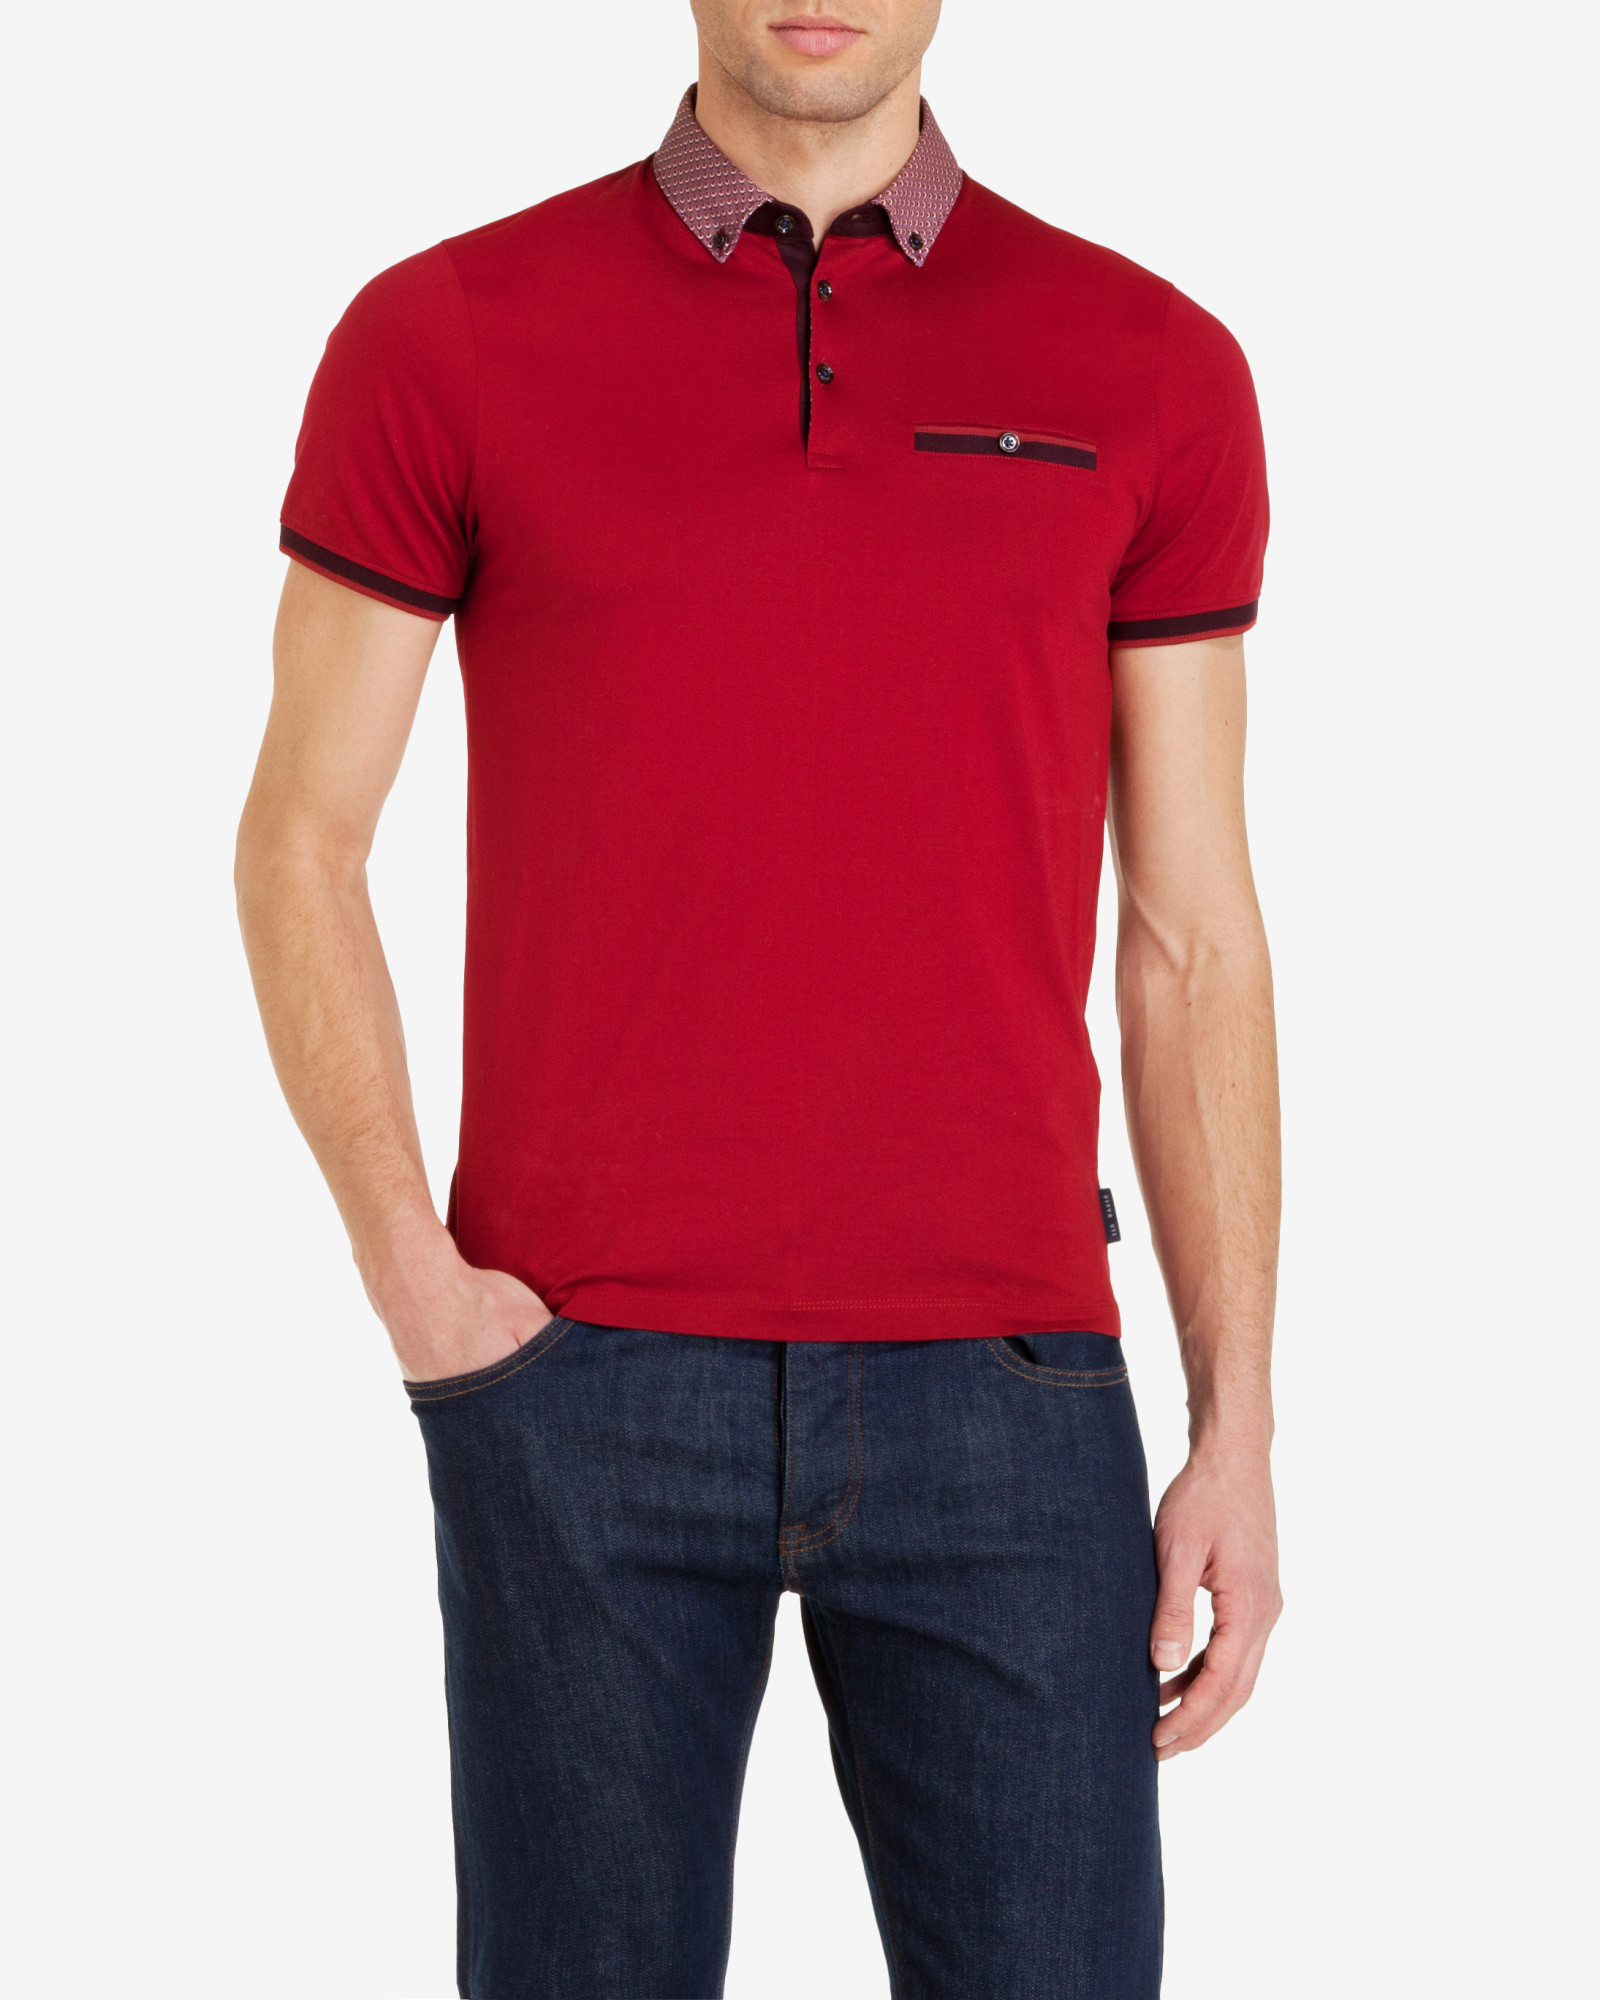 Ted baker printed collar polo shirt in red for men lyst for Ted baker mens polo shirts